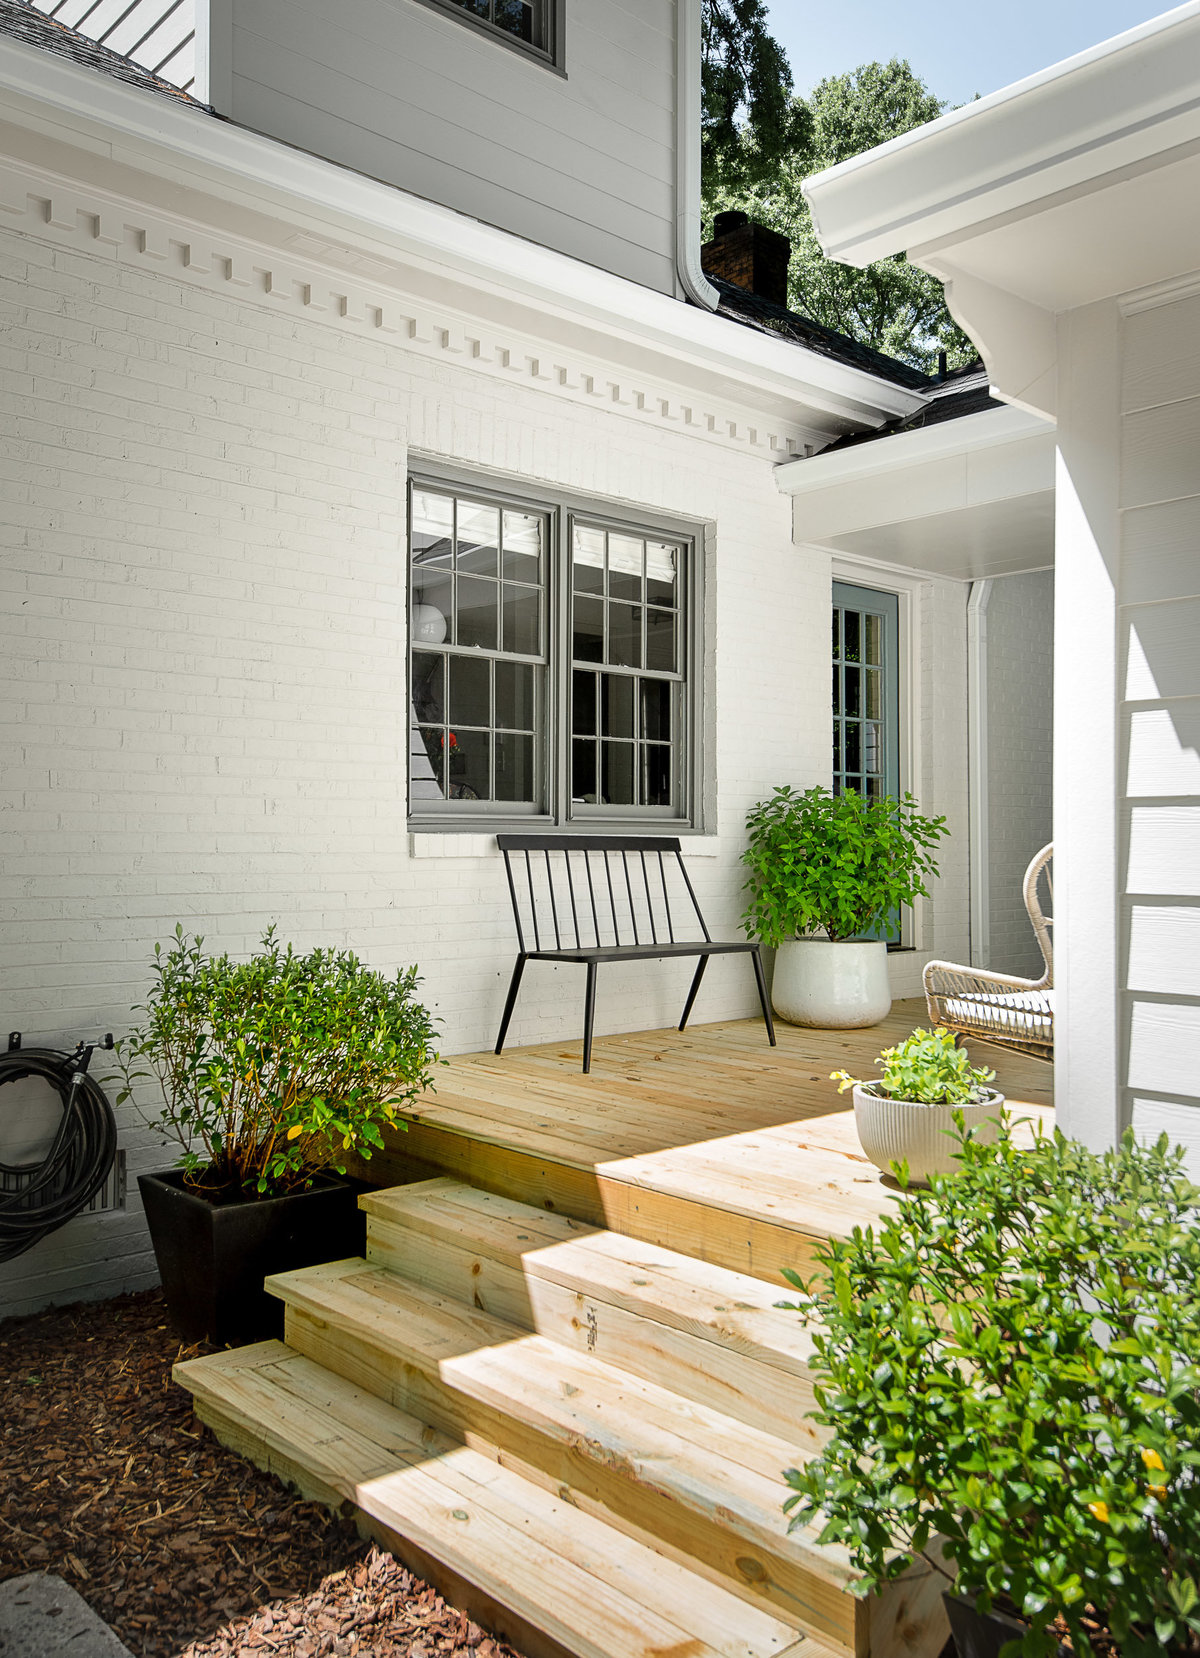 Bruton Exterior Architecture Clemons Design Co.